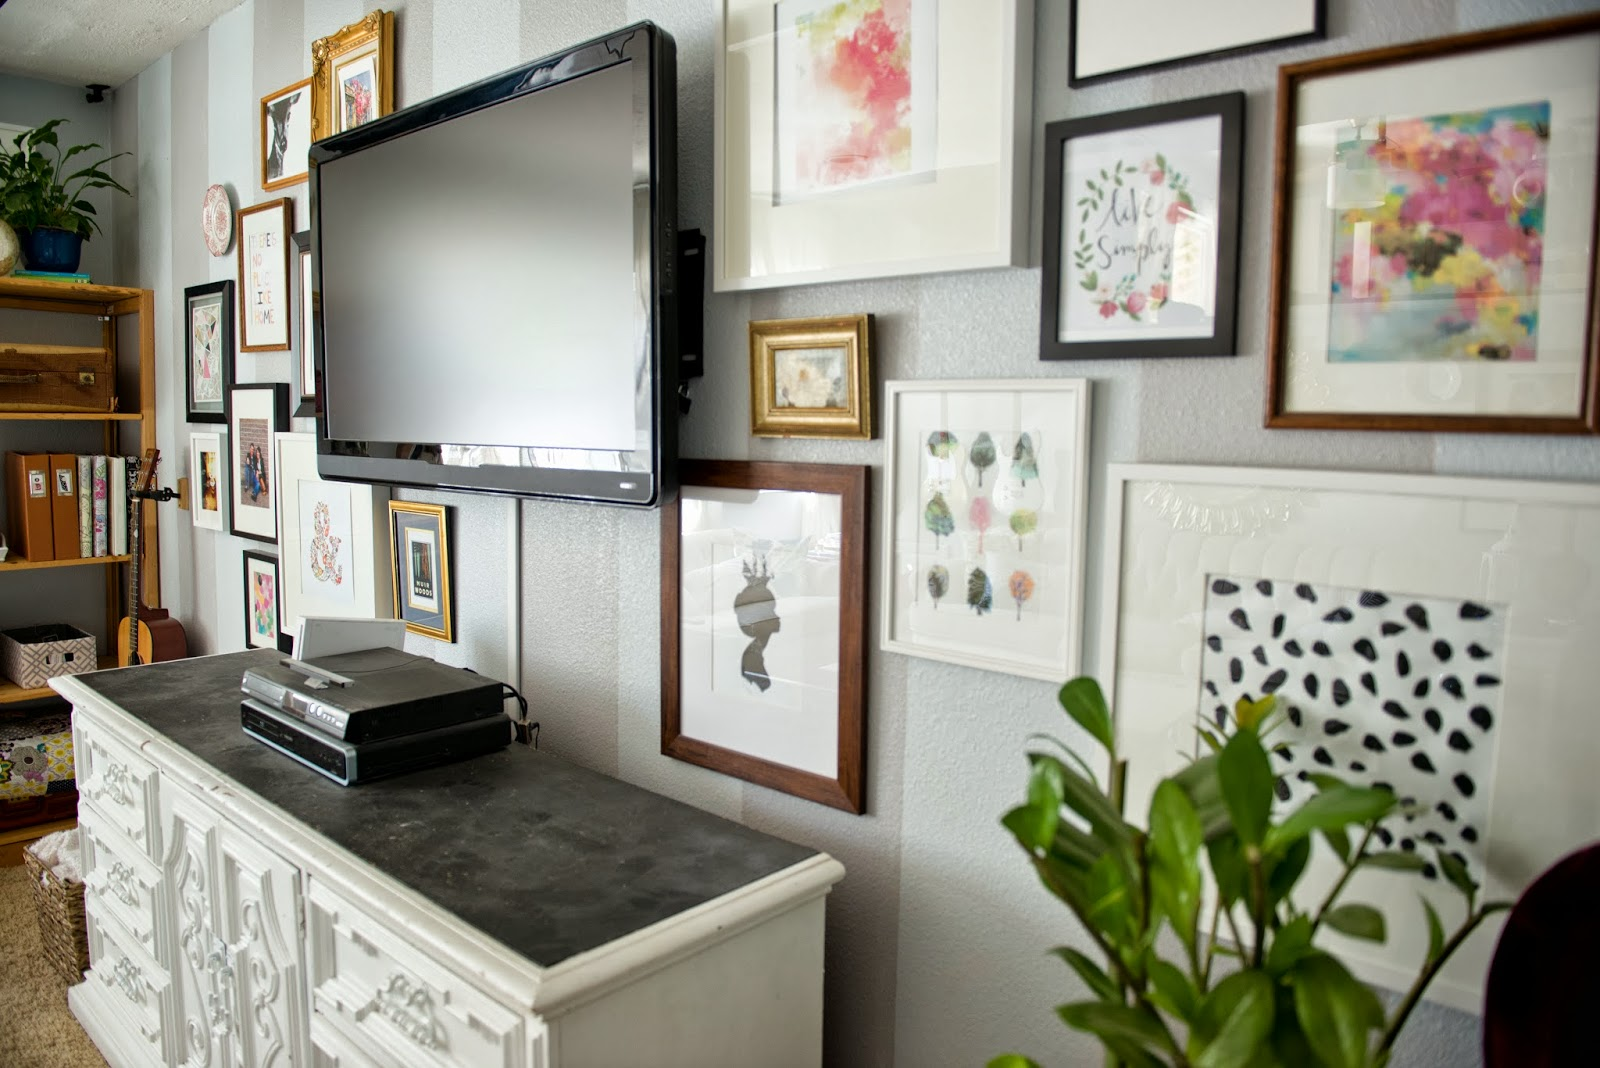 Decorating Ideas Around Tv On Wall Decor Around Tv Helpful Tips To Make A Statement In Your